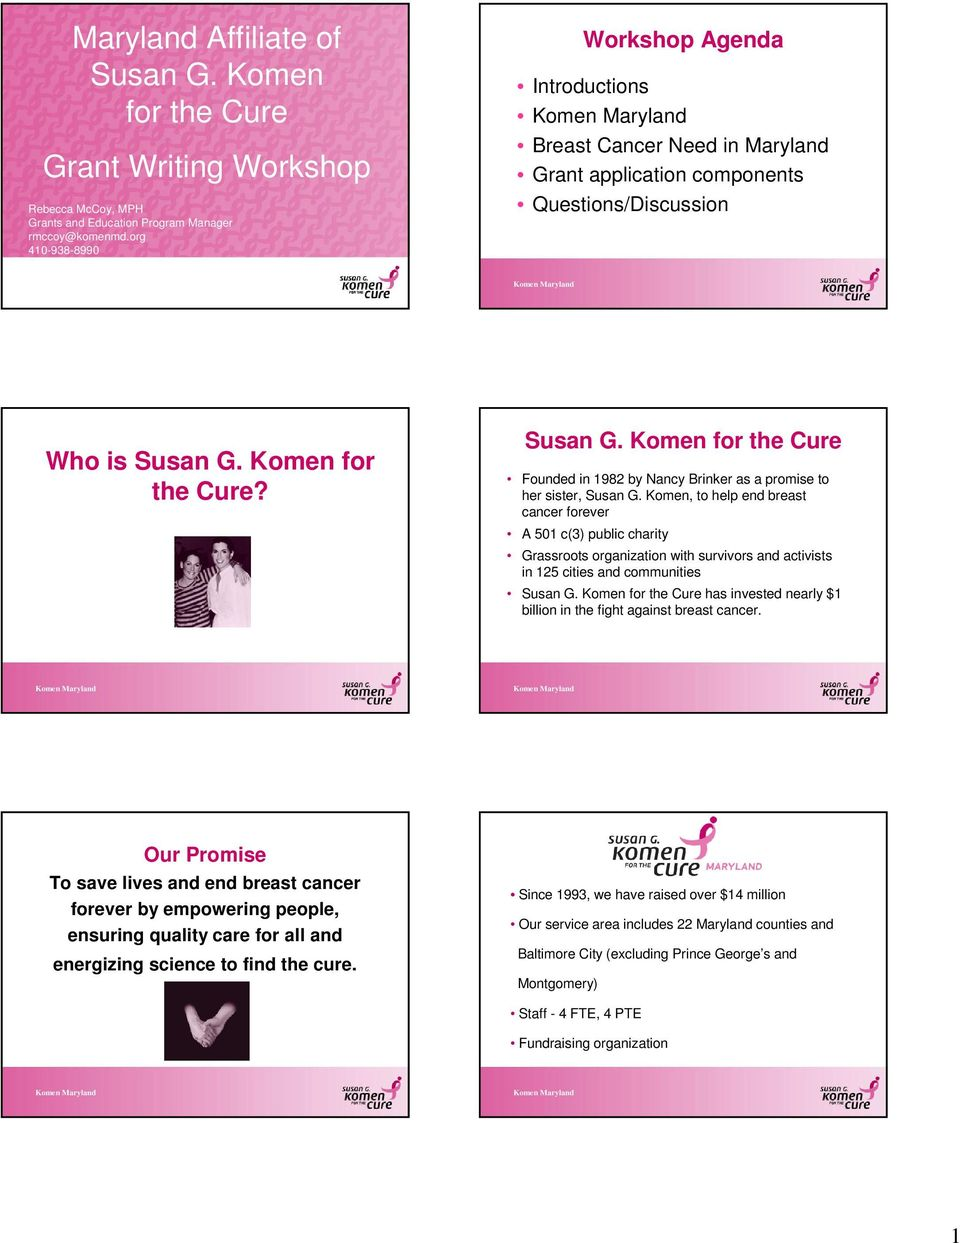 Komen for the Cure? Susan G. Komen for the Cure Founded in 1982 by Nancy Brinker as a promise to her sister, Susan G.